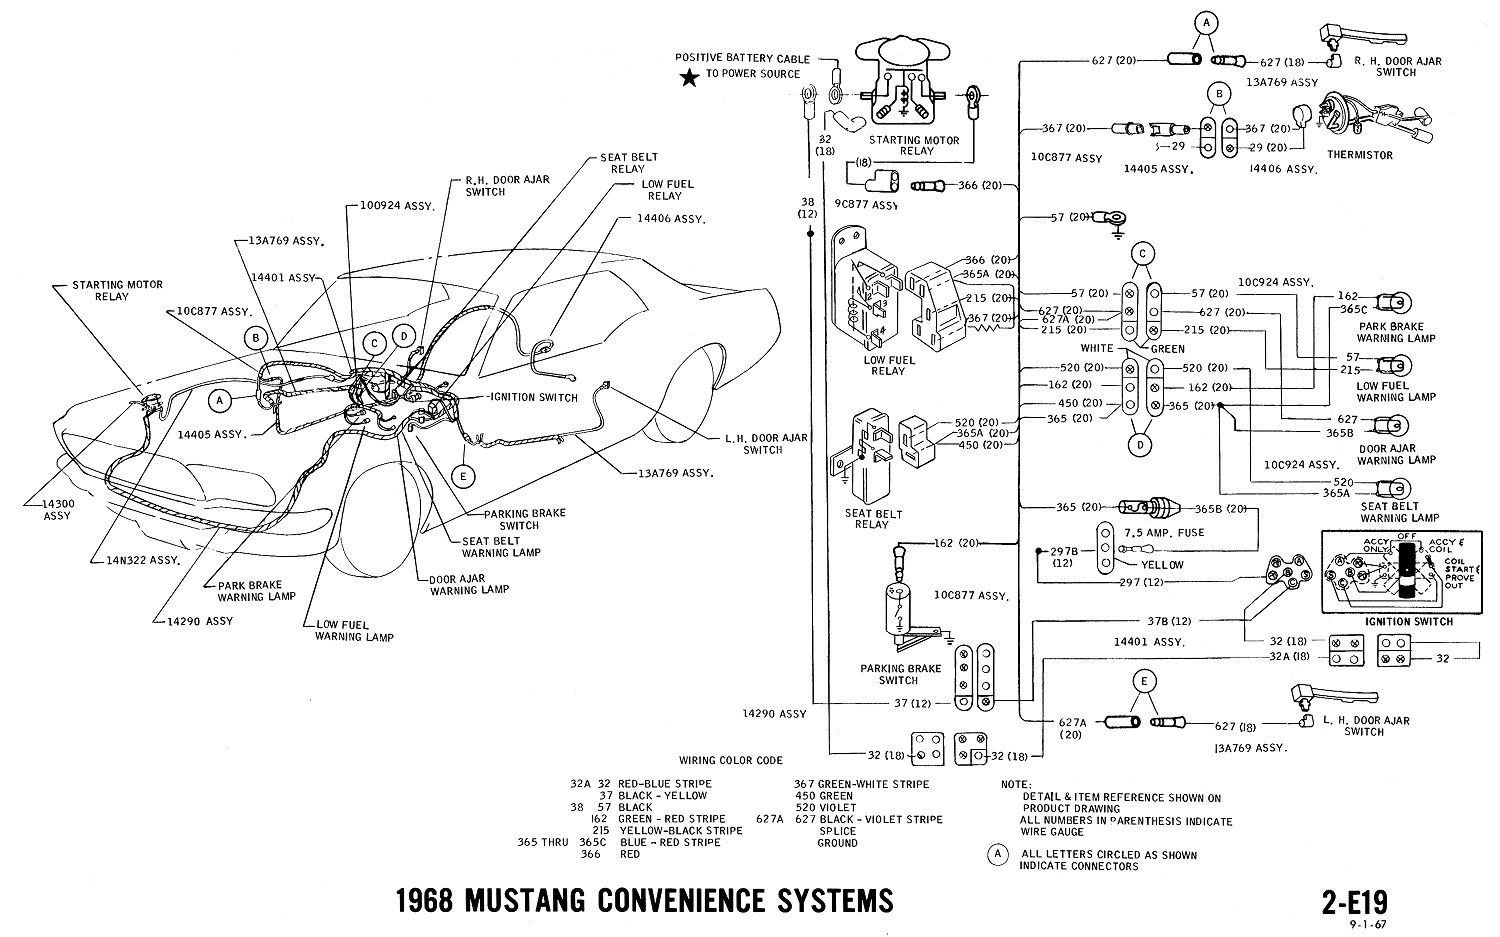 1968 mustang wiring diagram convenience systems 1968 mustang wiring diagrams and vacuum schematics average joe 1969 mustang instrument cluster wiring diagram at n-0.co